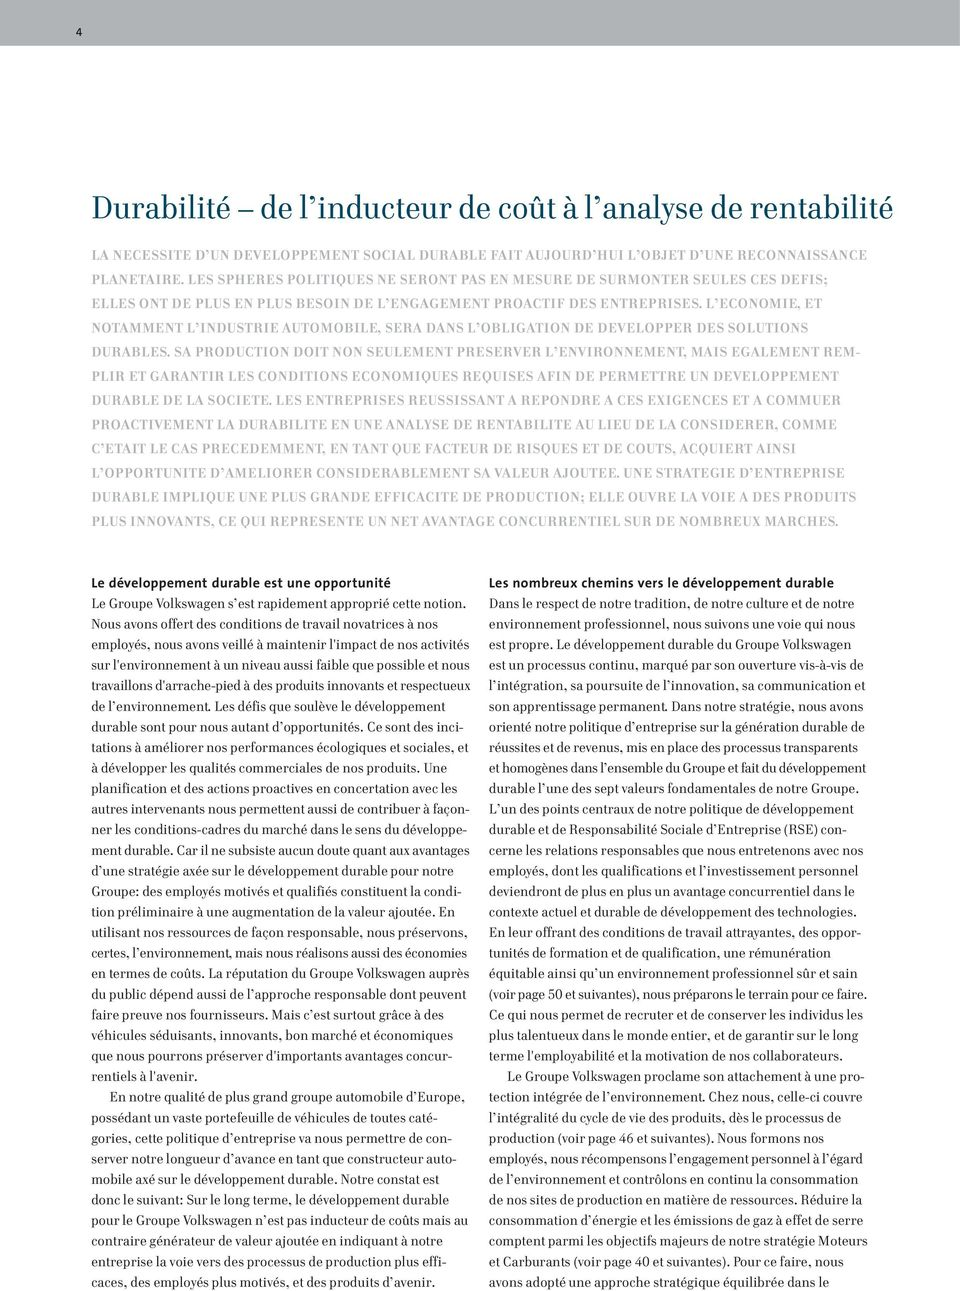 L ECONOMIE, ET NOTAMMENT L INDUSTRIE AUTOMOBILE, SERA DANS L OBLIGATION DE DEVELOPPER DES SOLUTIONS DURABLES.